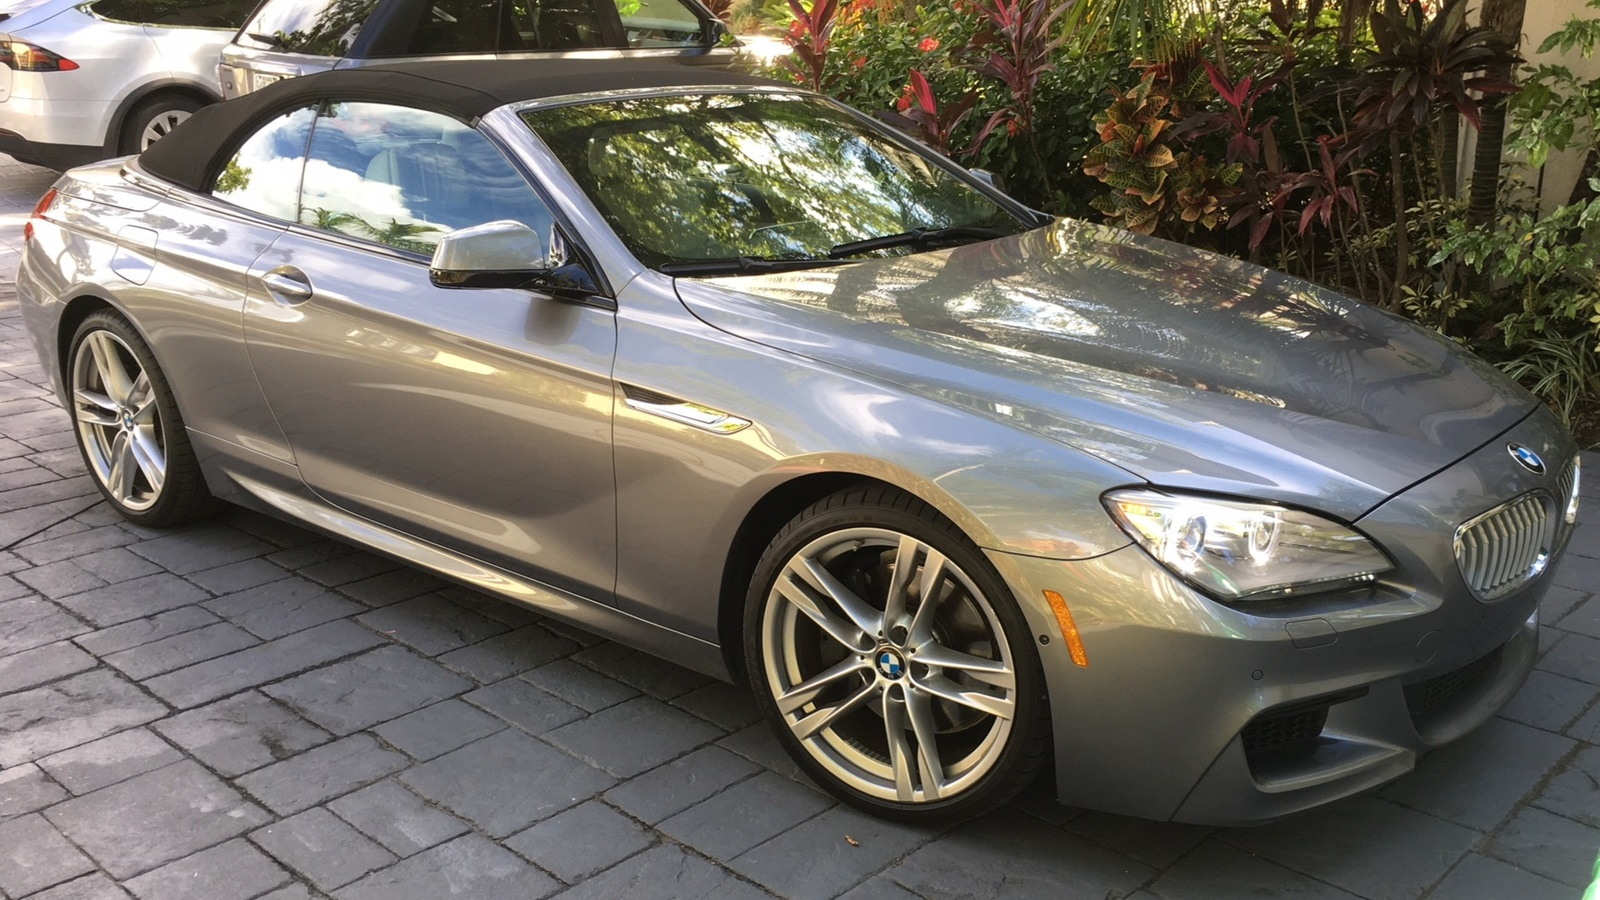 BMW 6 Series Questions - CAR SPECS - CarGurus